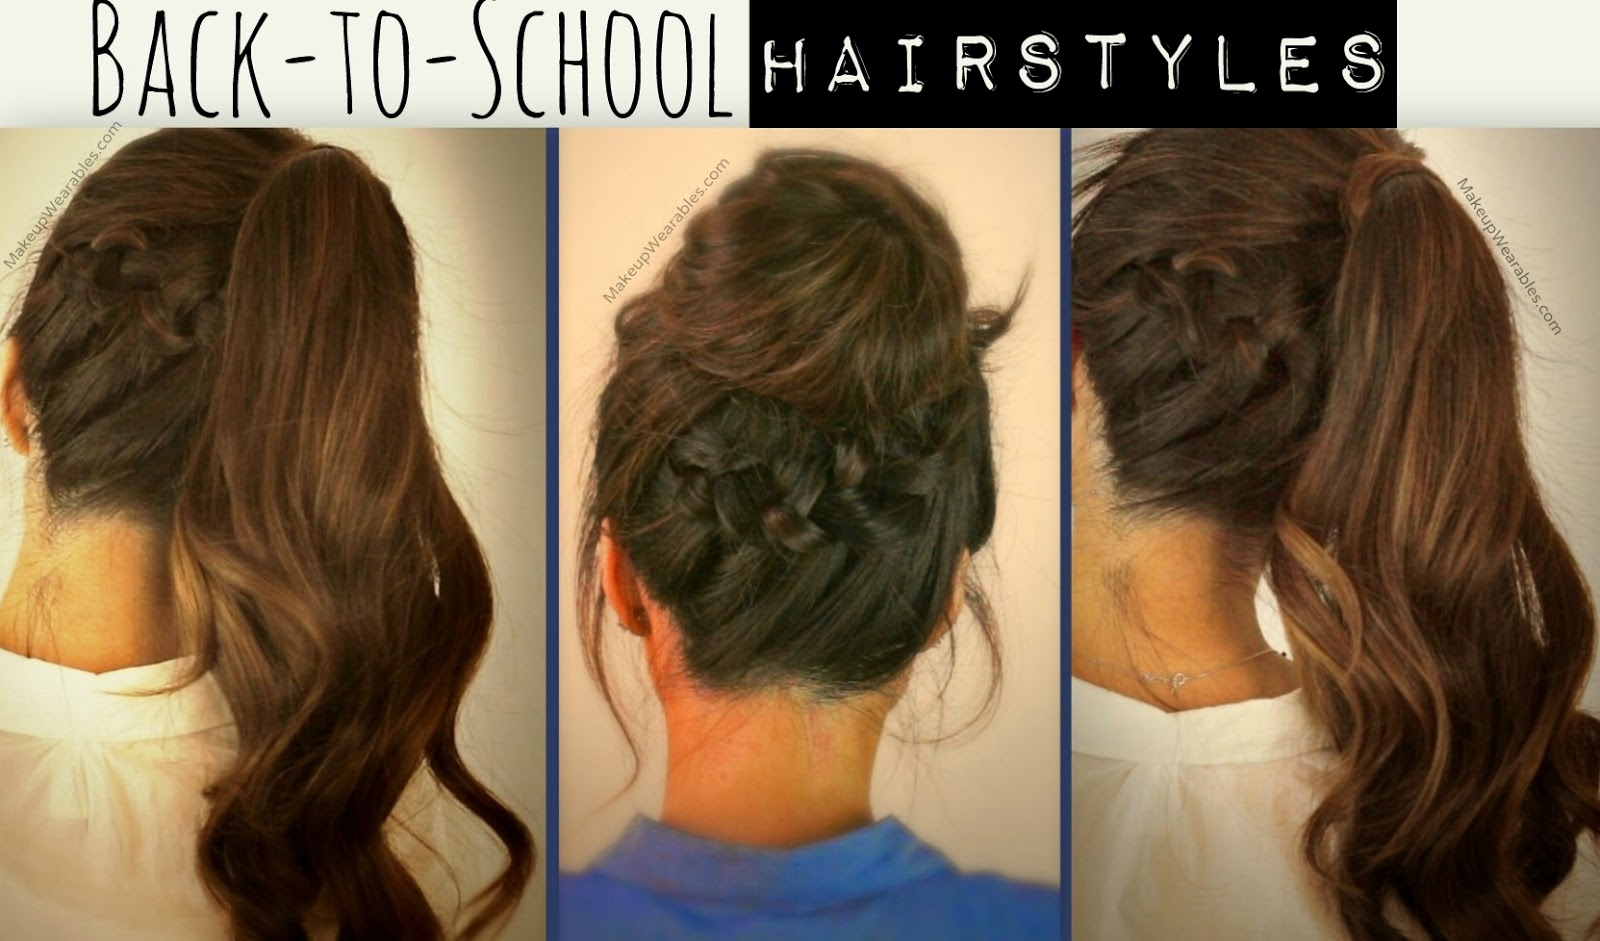 These hair styles are not just for elementary, middle, high school, or